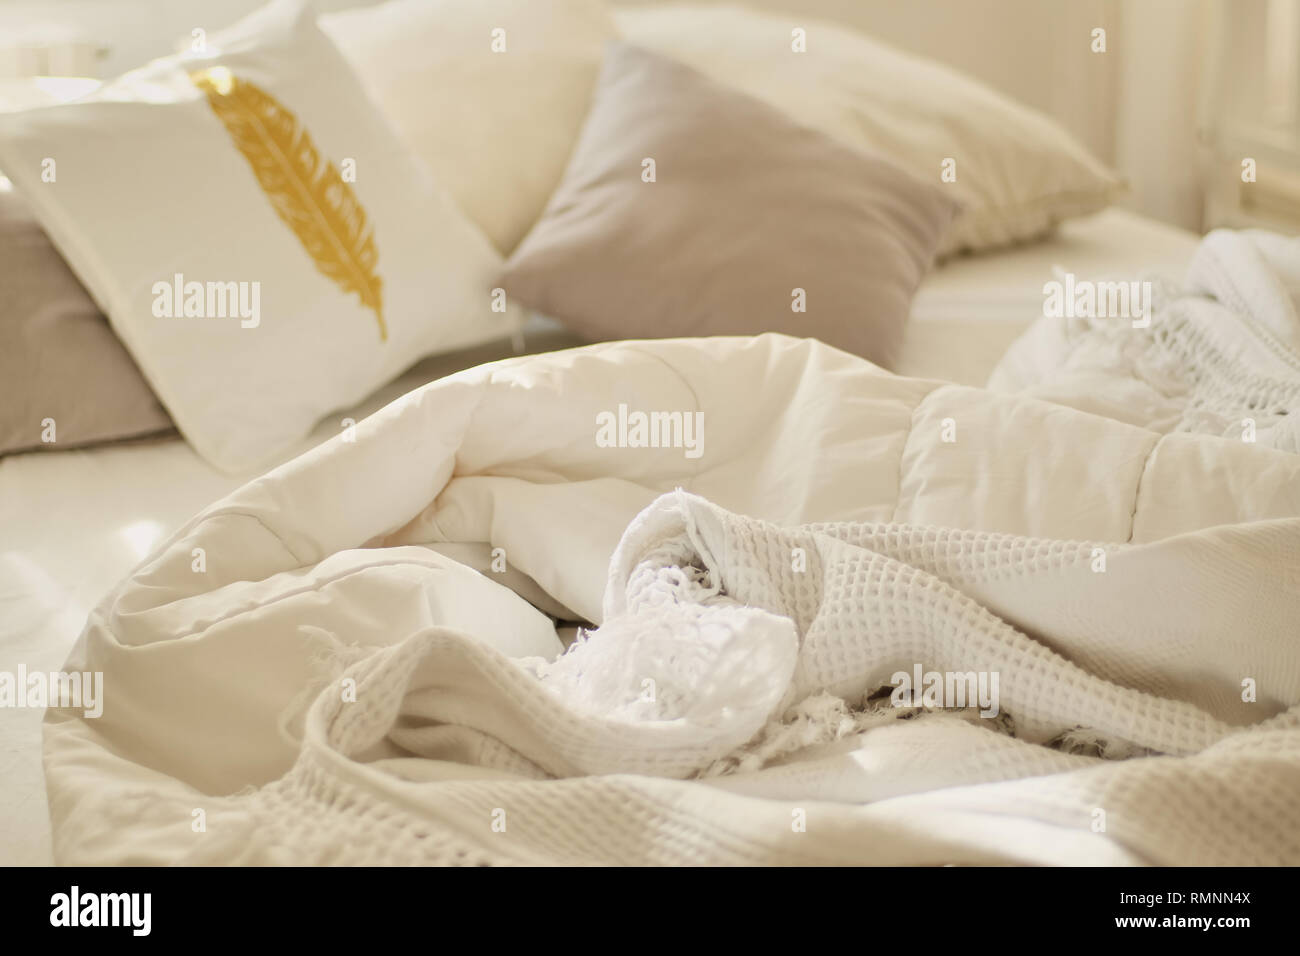 Messy bed. White pillow with blanket on bed unmade. Concept of relaxing after morning. With lighting window. Top view. - Stock Image